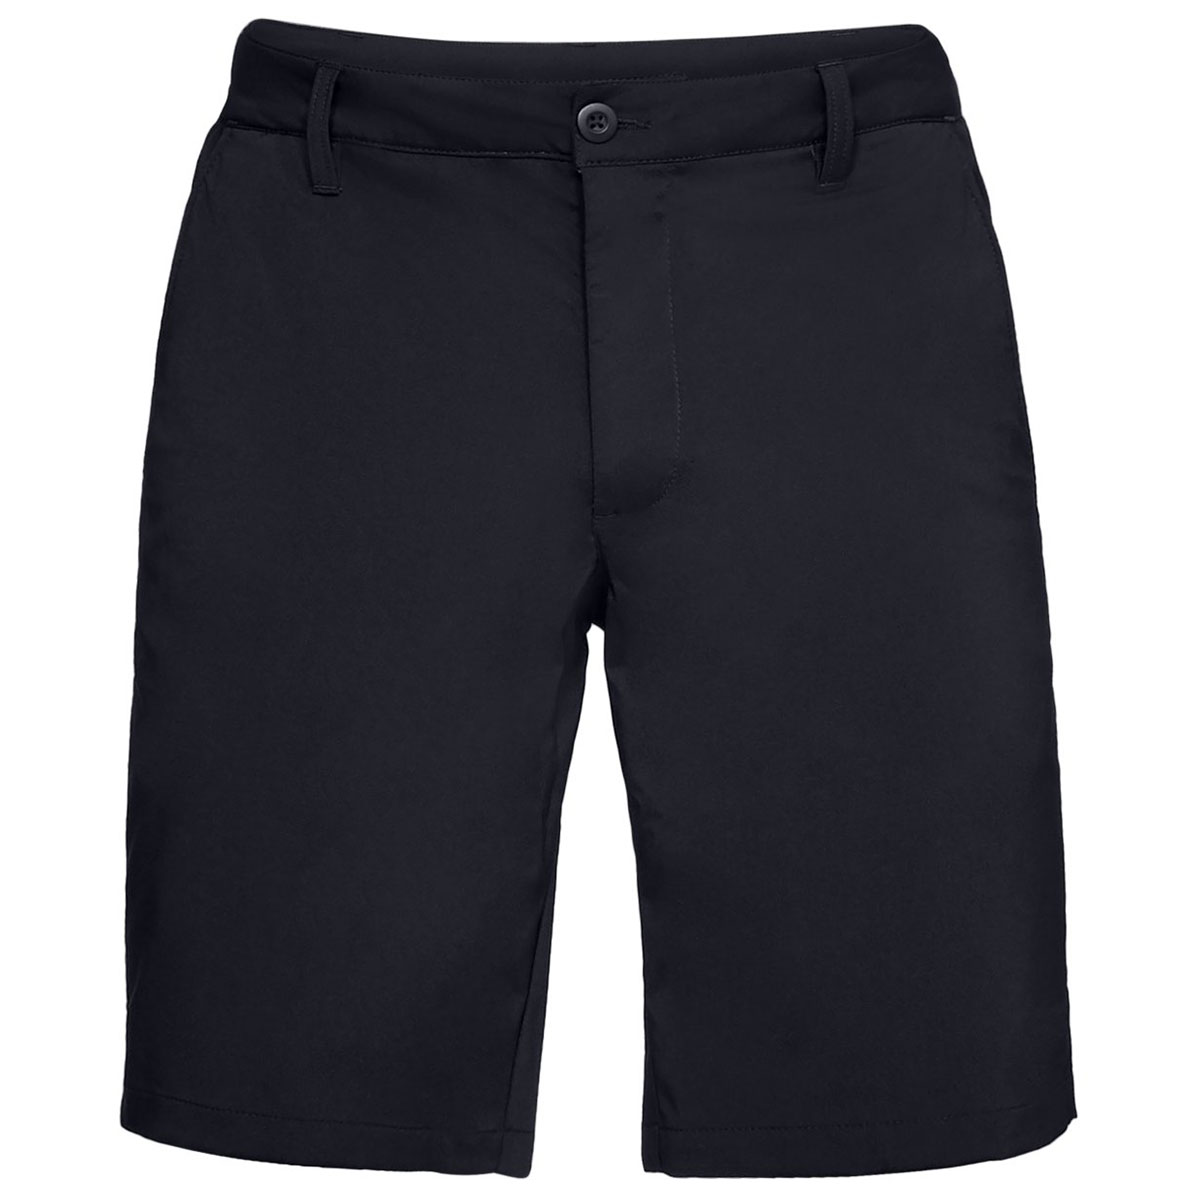 Under-Armour-Mens-EU-Tech-Stretch-Soft-Fitted-Golf-Shorts thumbnail 4